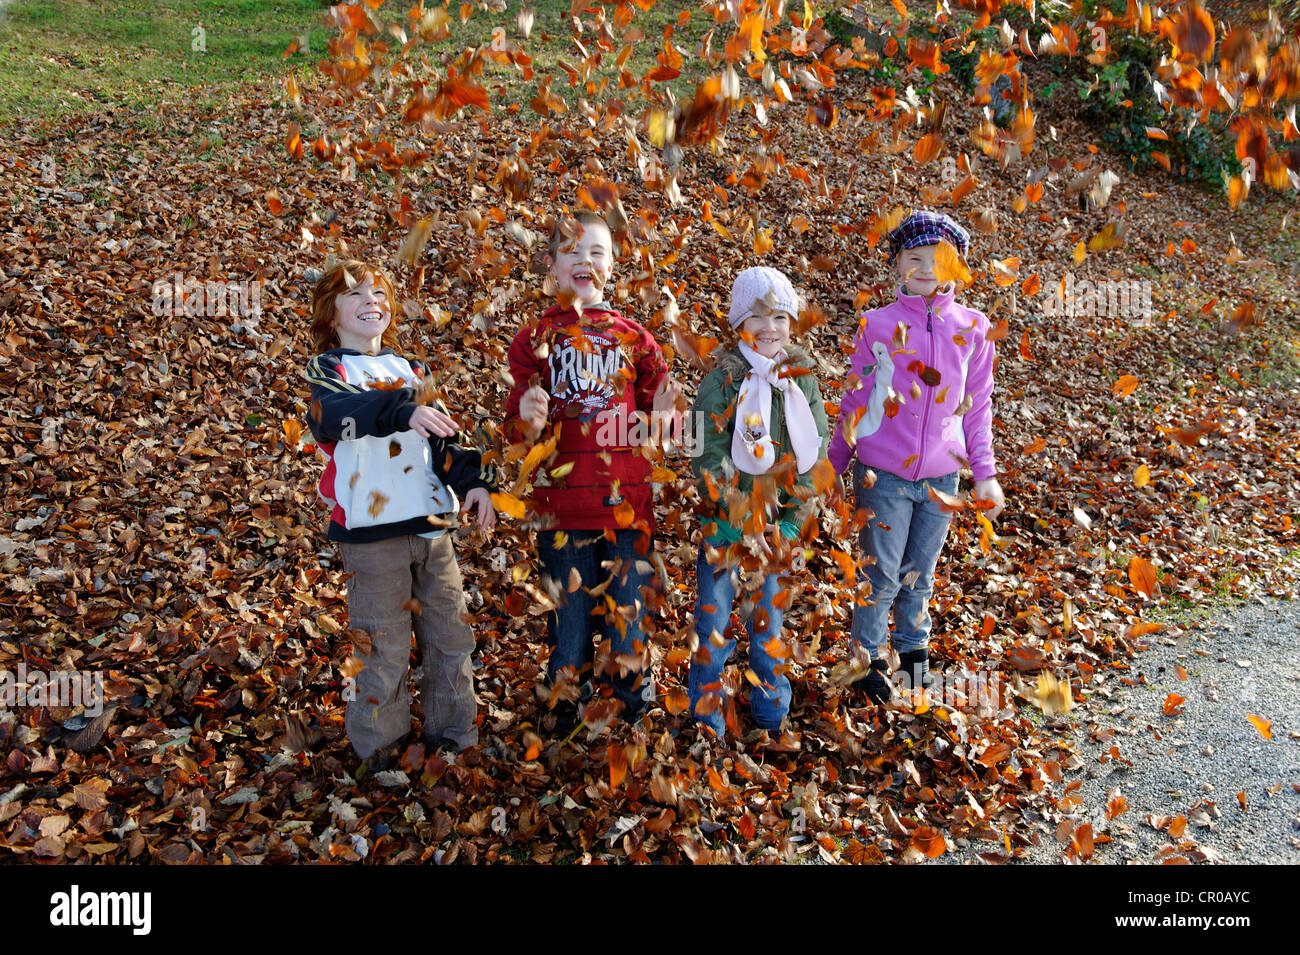 Children playing with leaves in autumn - Stock Image